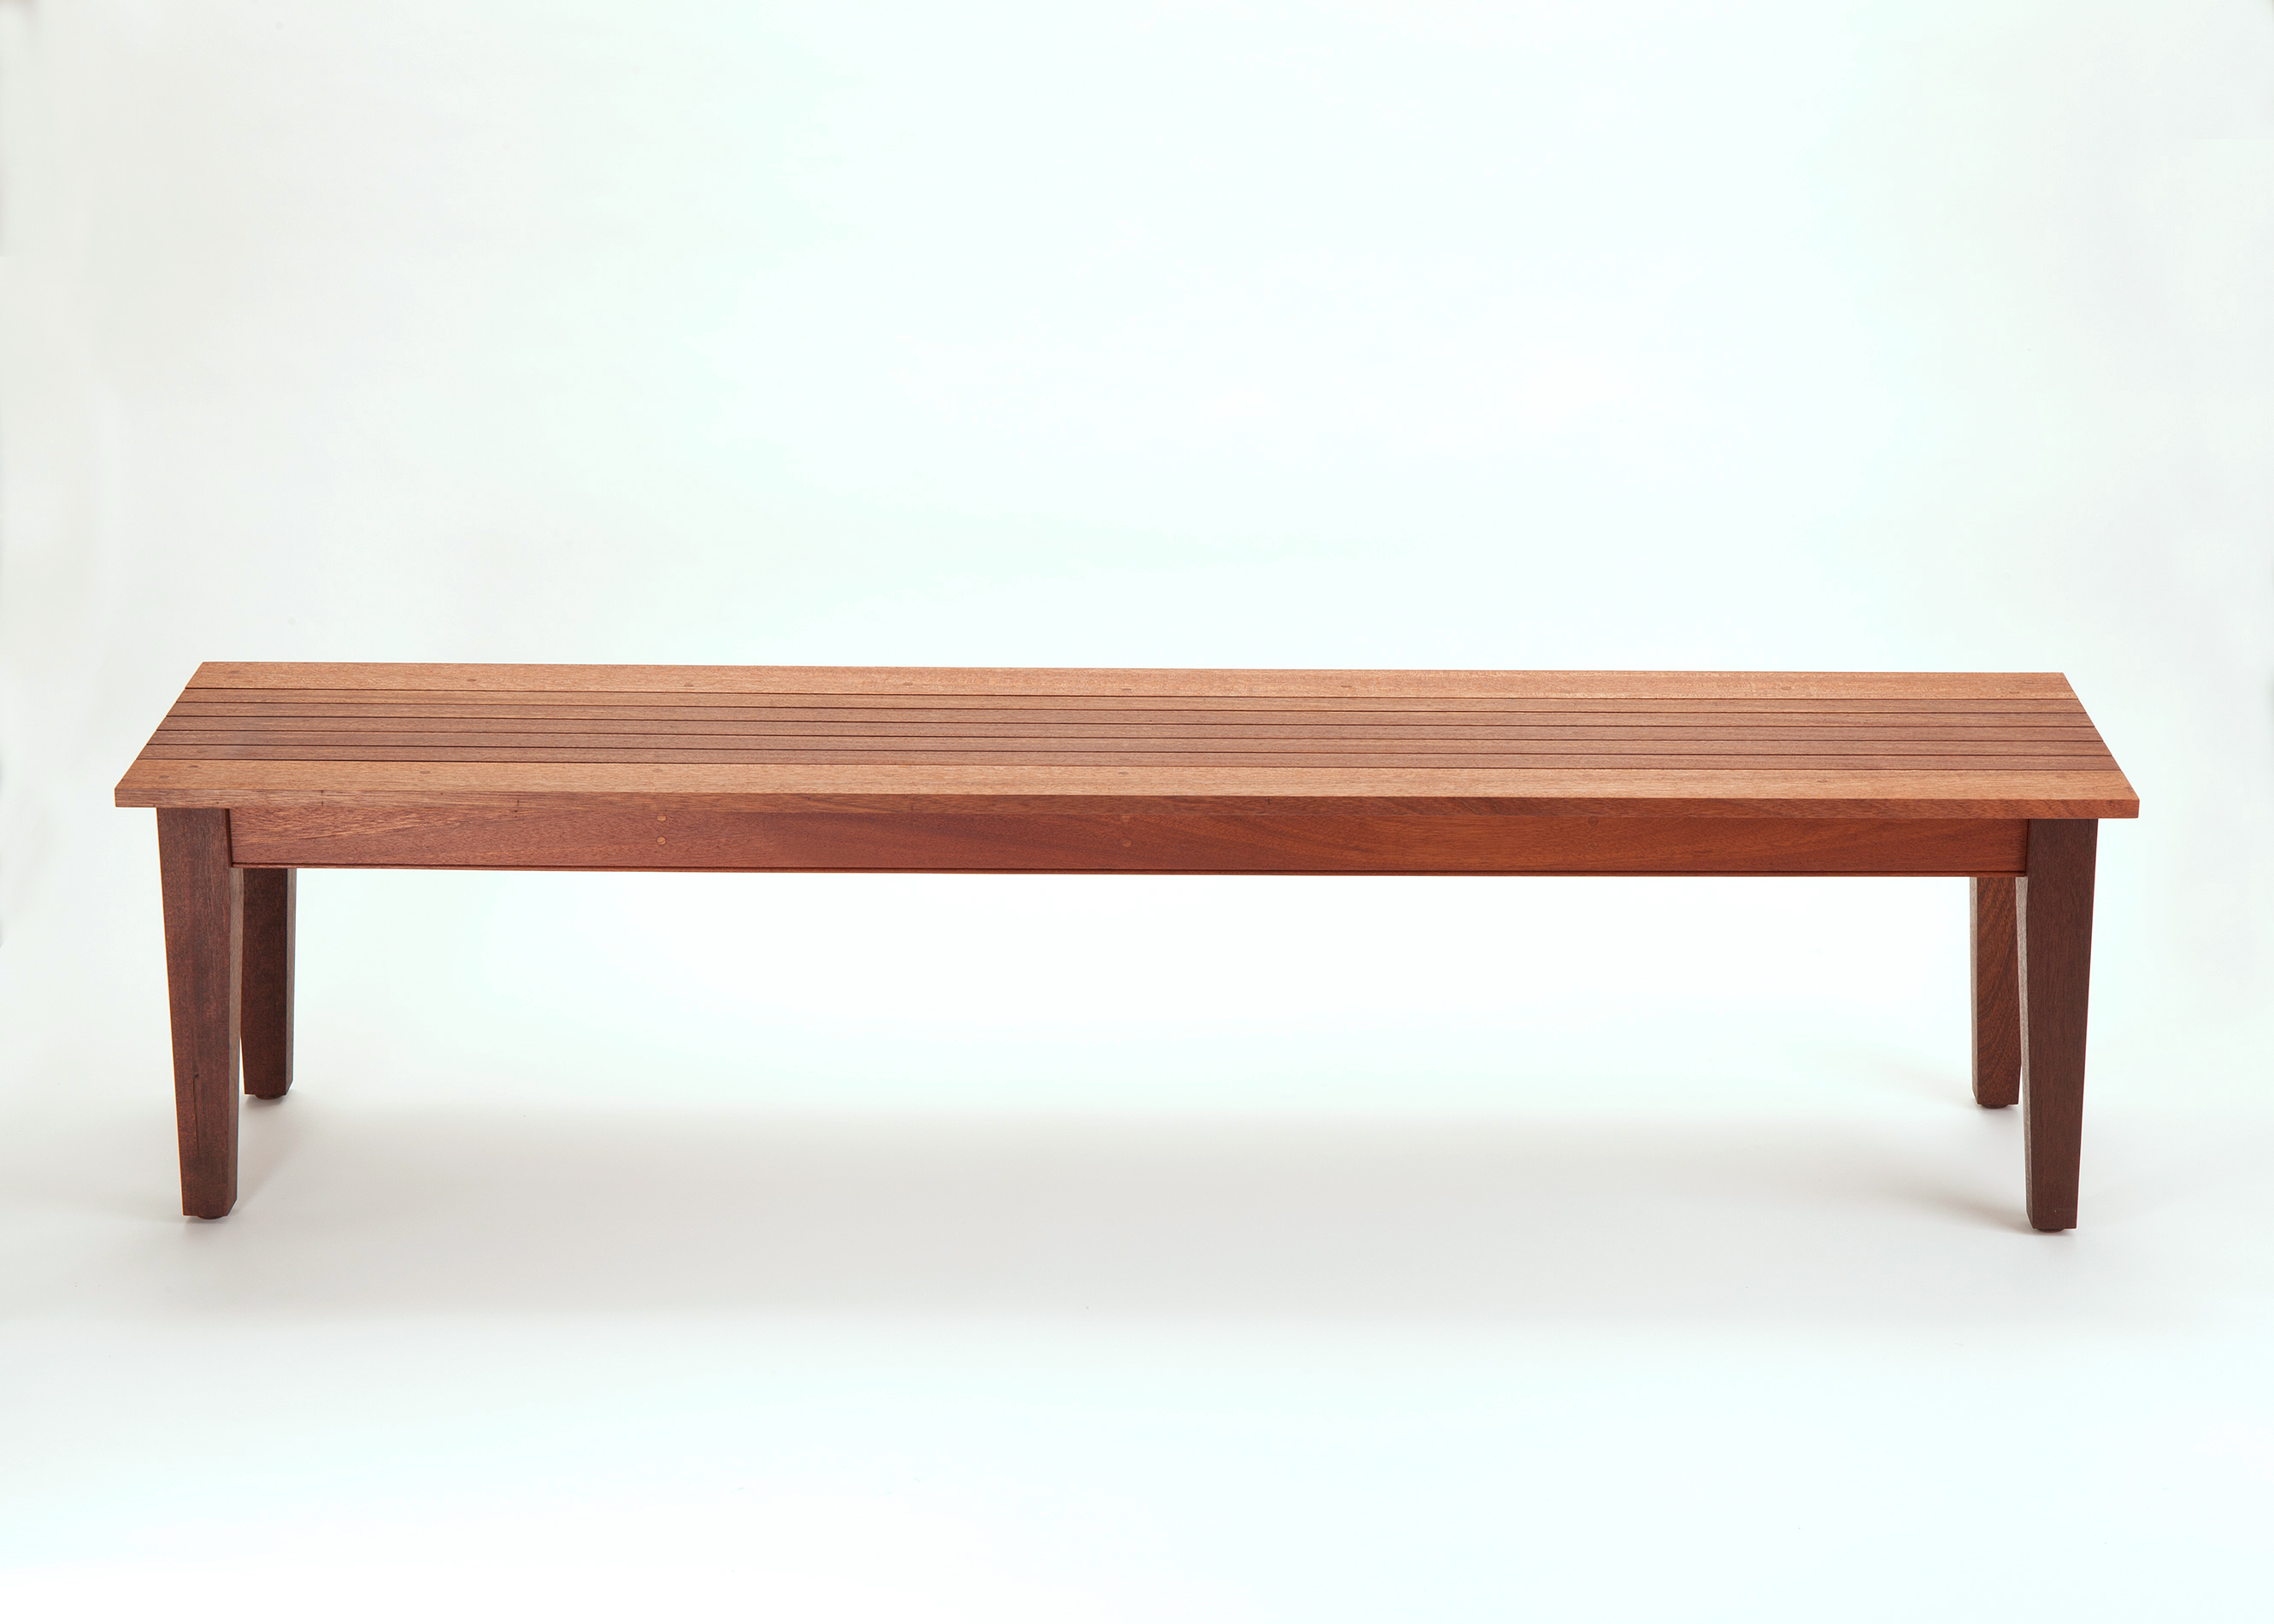 farm bench gallery reclaimed furniture created concepts benches wood table